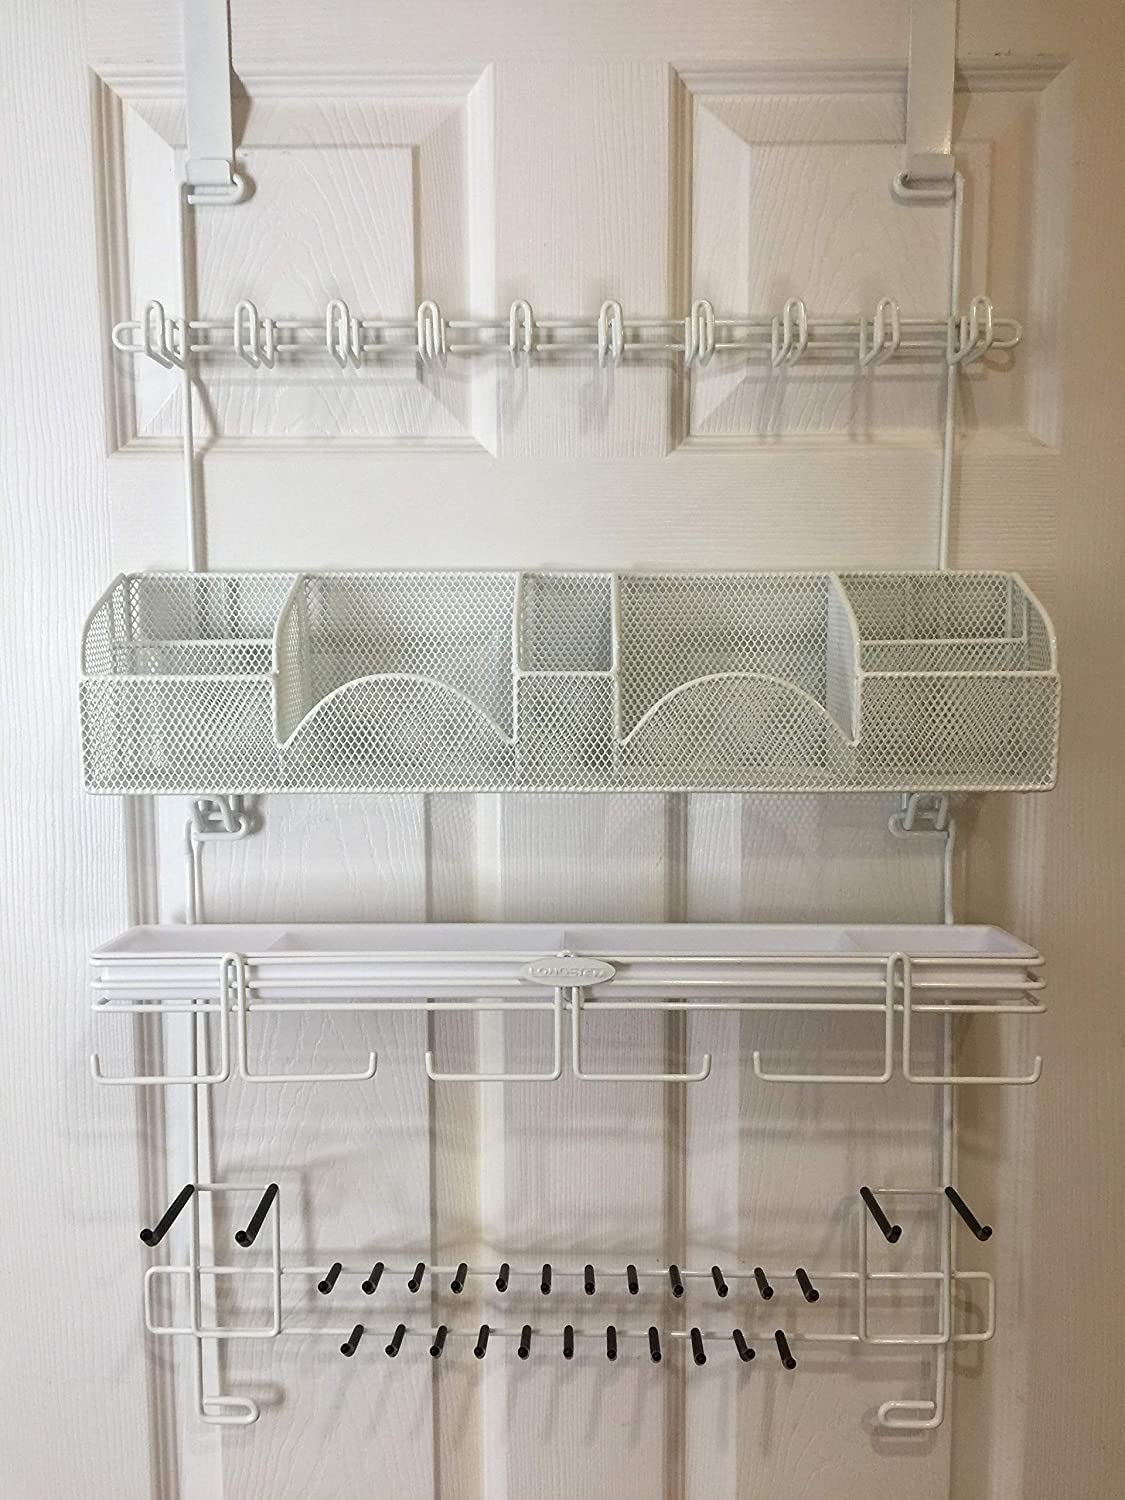 Men's Over the Door/Wall Belt Tie Valet Organizer - WHITE men's organizer - Patented - Rated Best! Longstem Organizers Inc. 9300